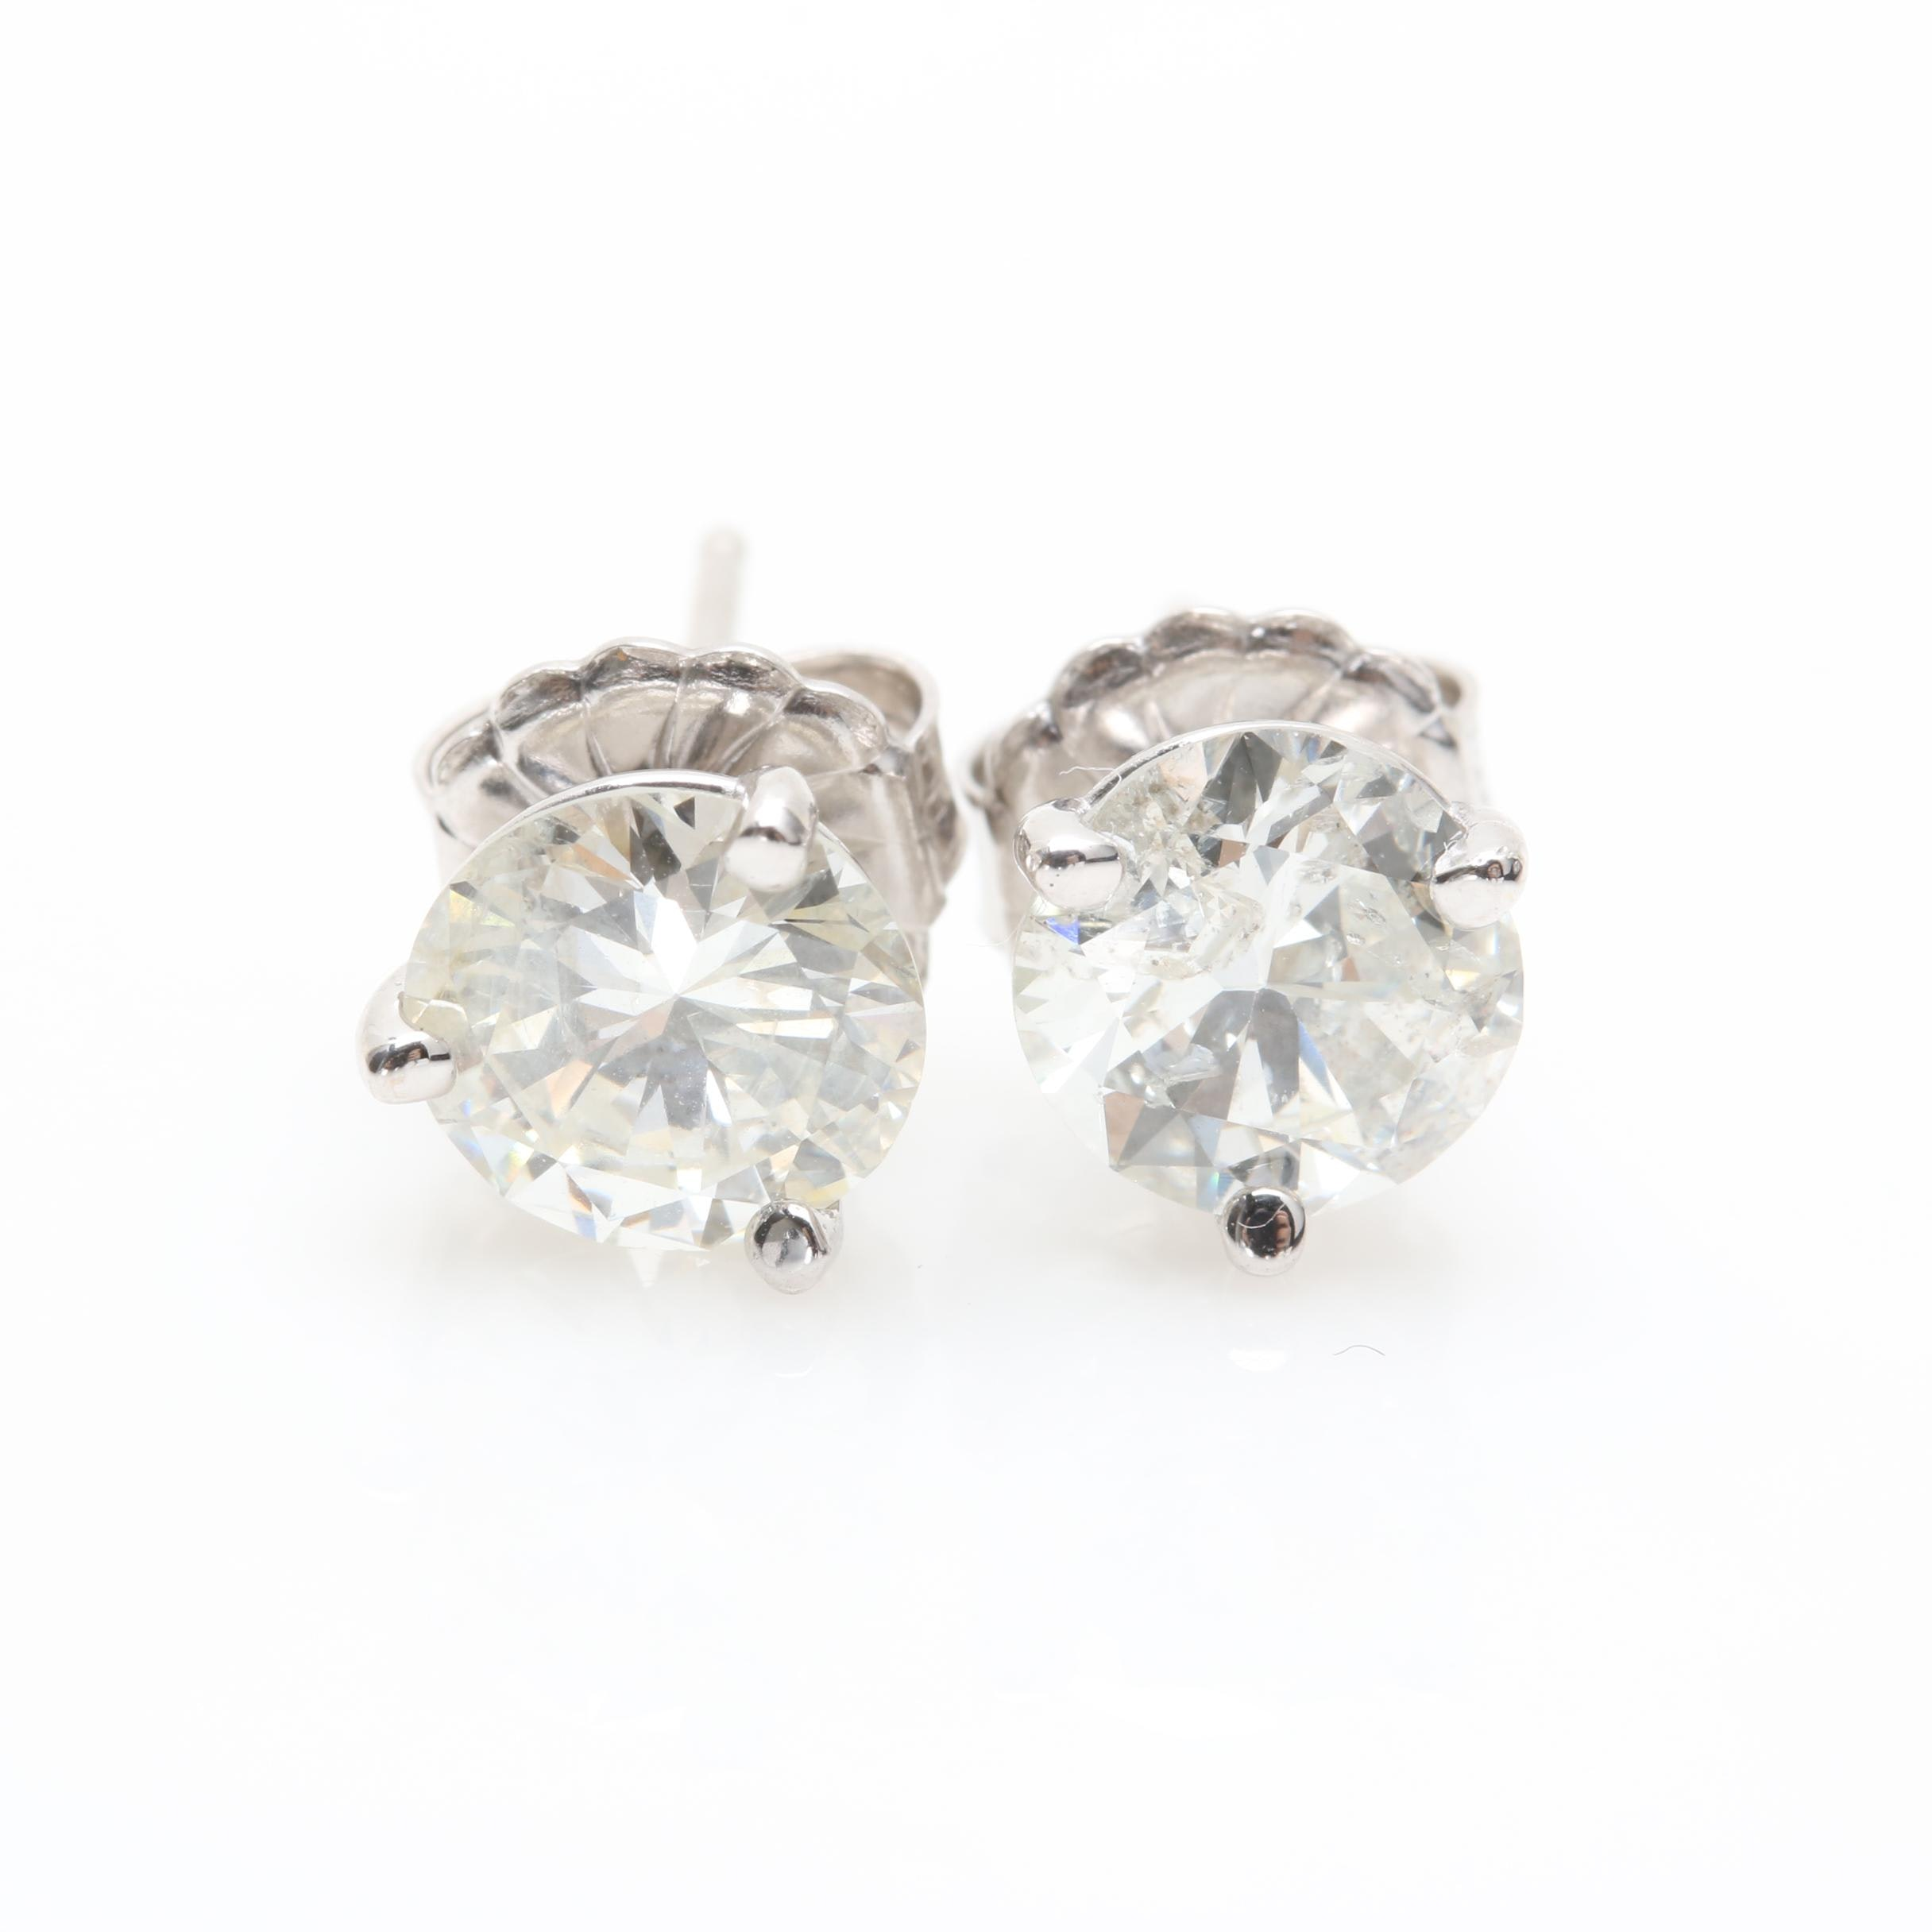 14K White Gold 1.88 CTW Diamond Martini Set Stud Earrings